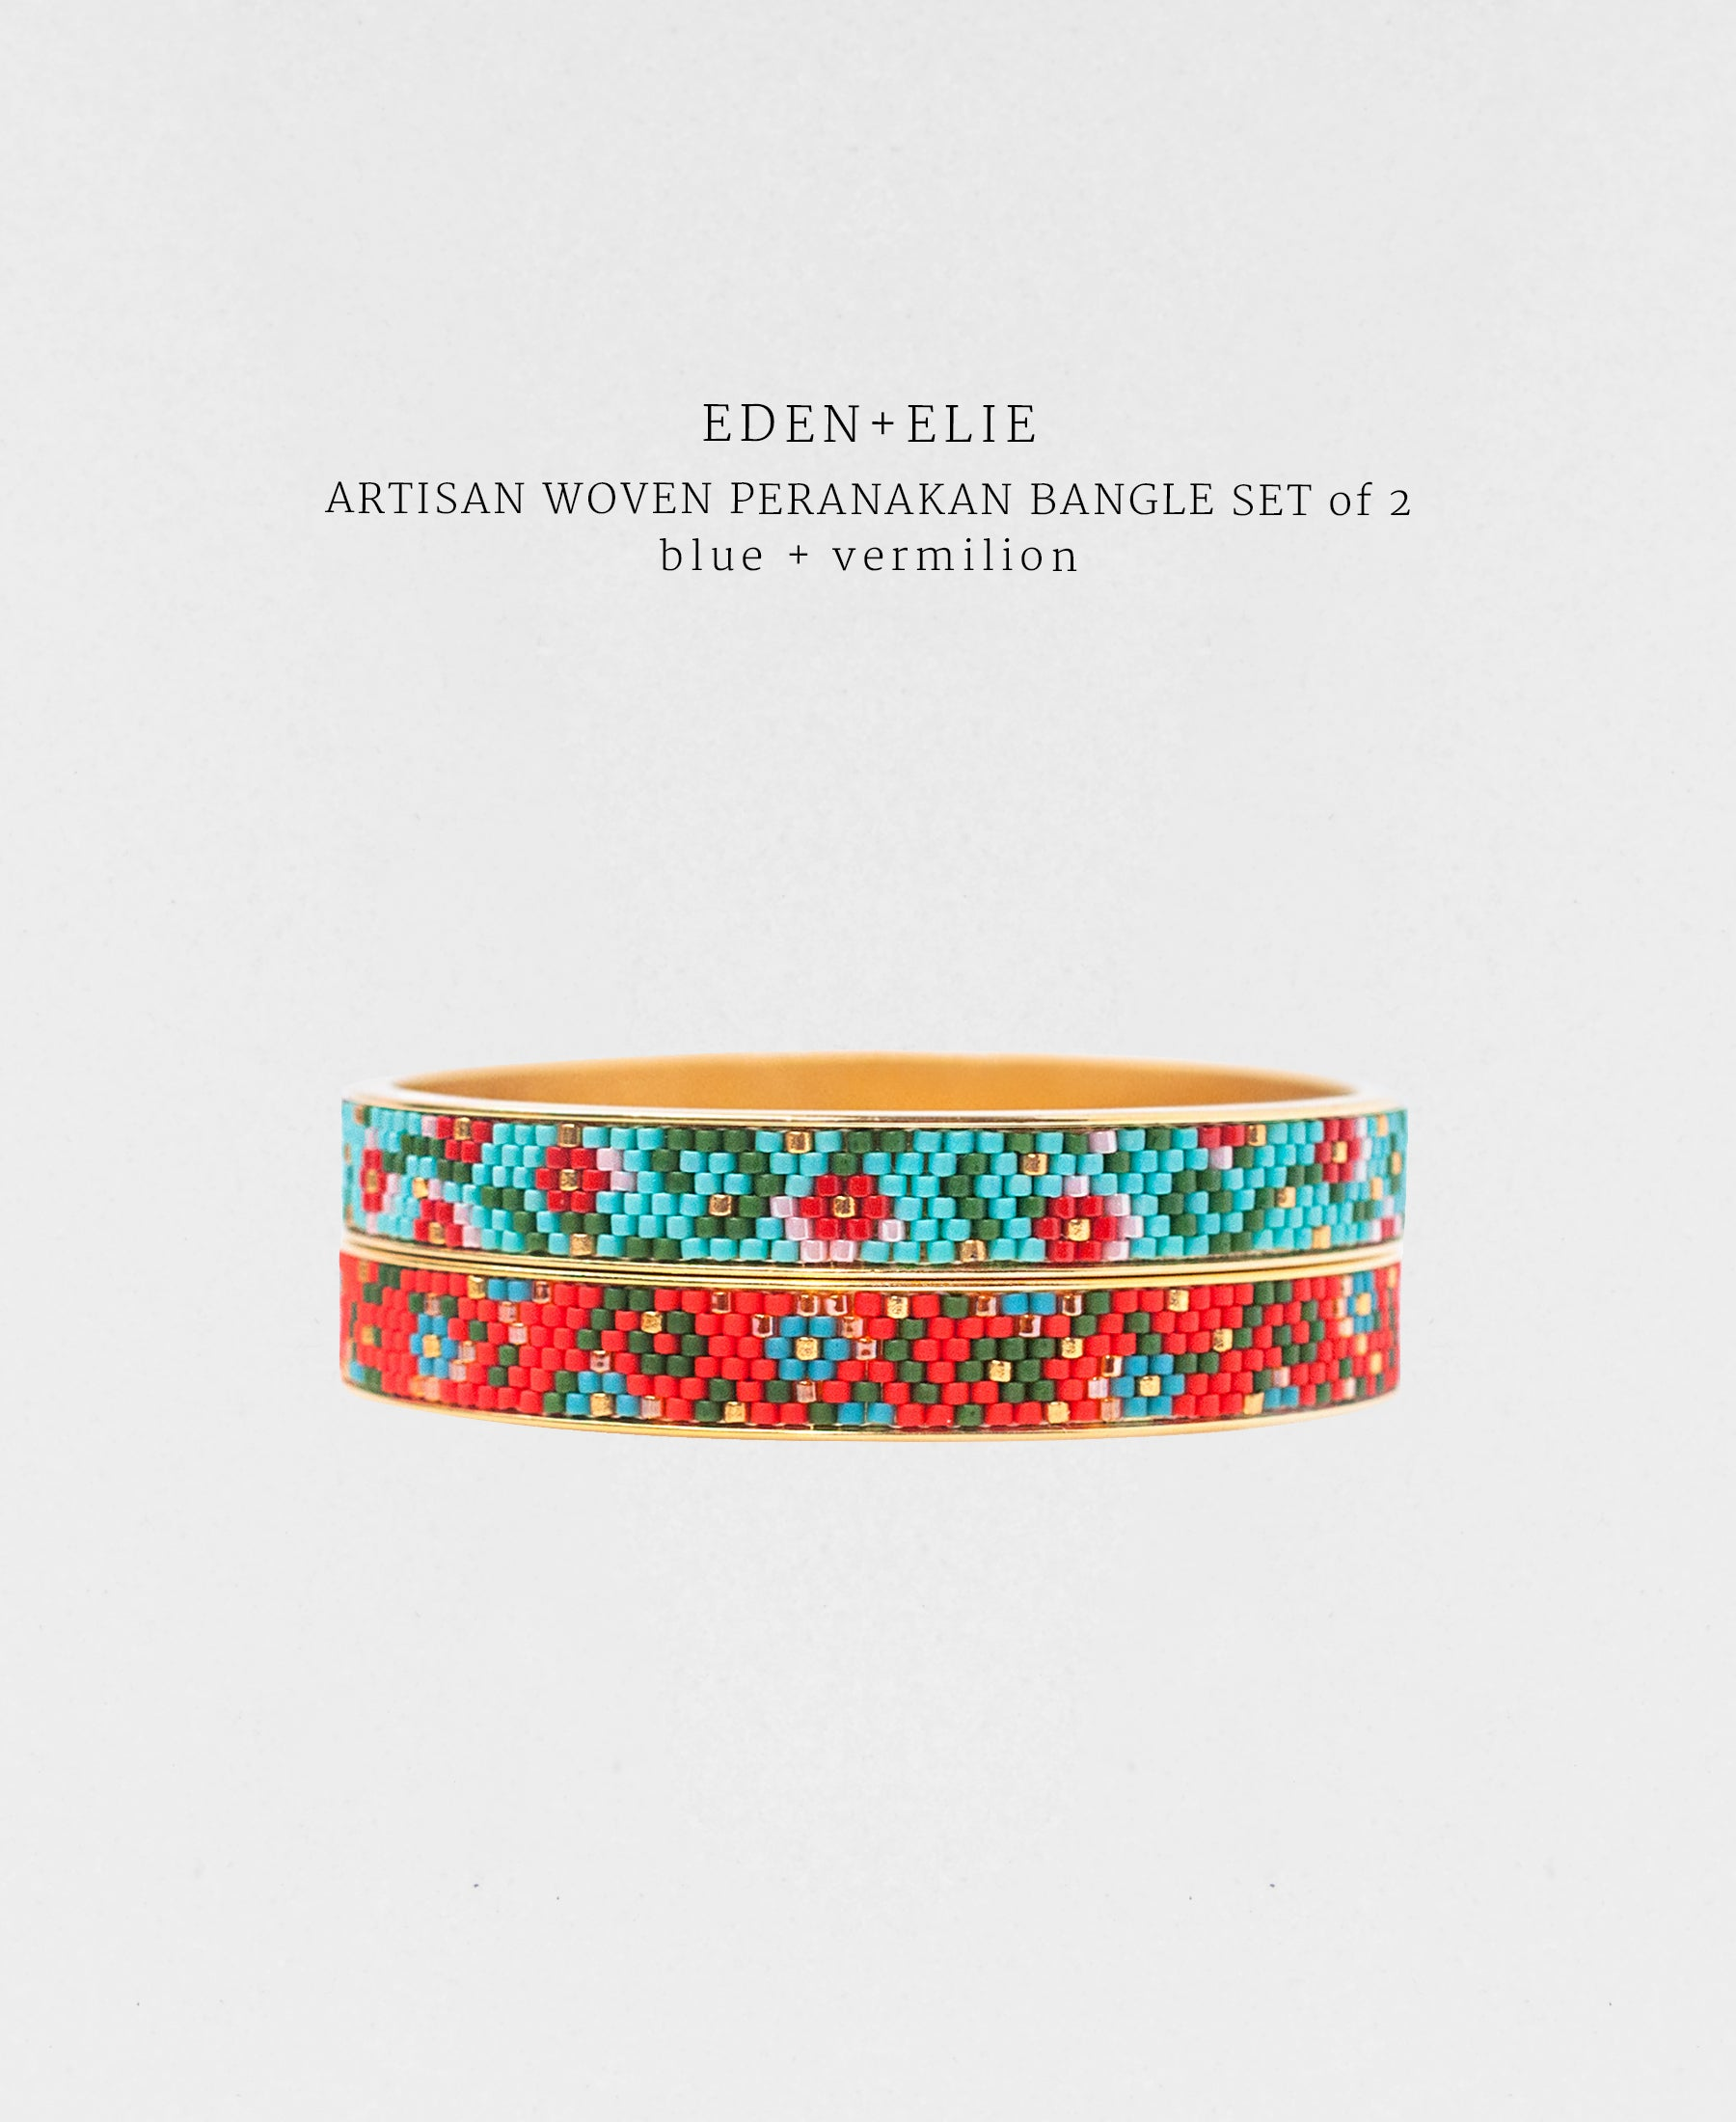 EDEN + ELIE Modern Peranakan gold narrow bangles set of 2 - blue + vermilion